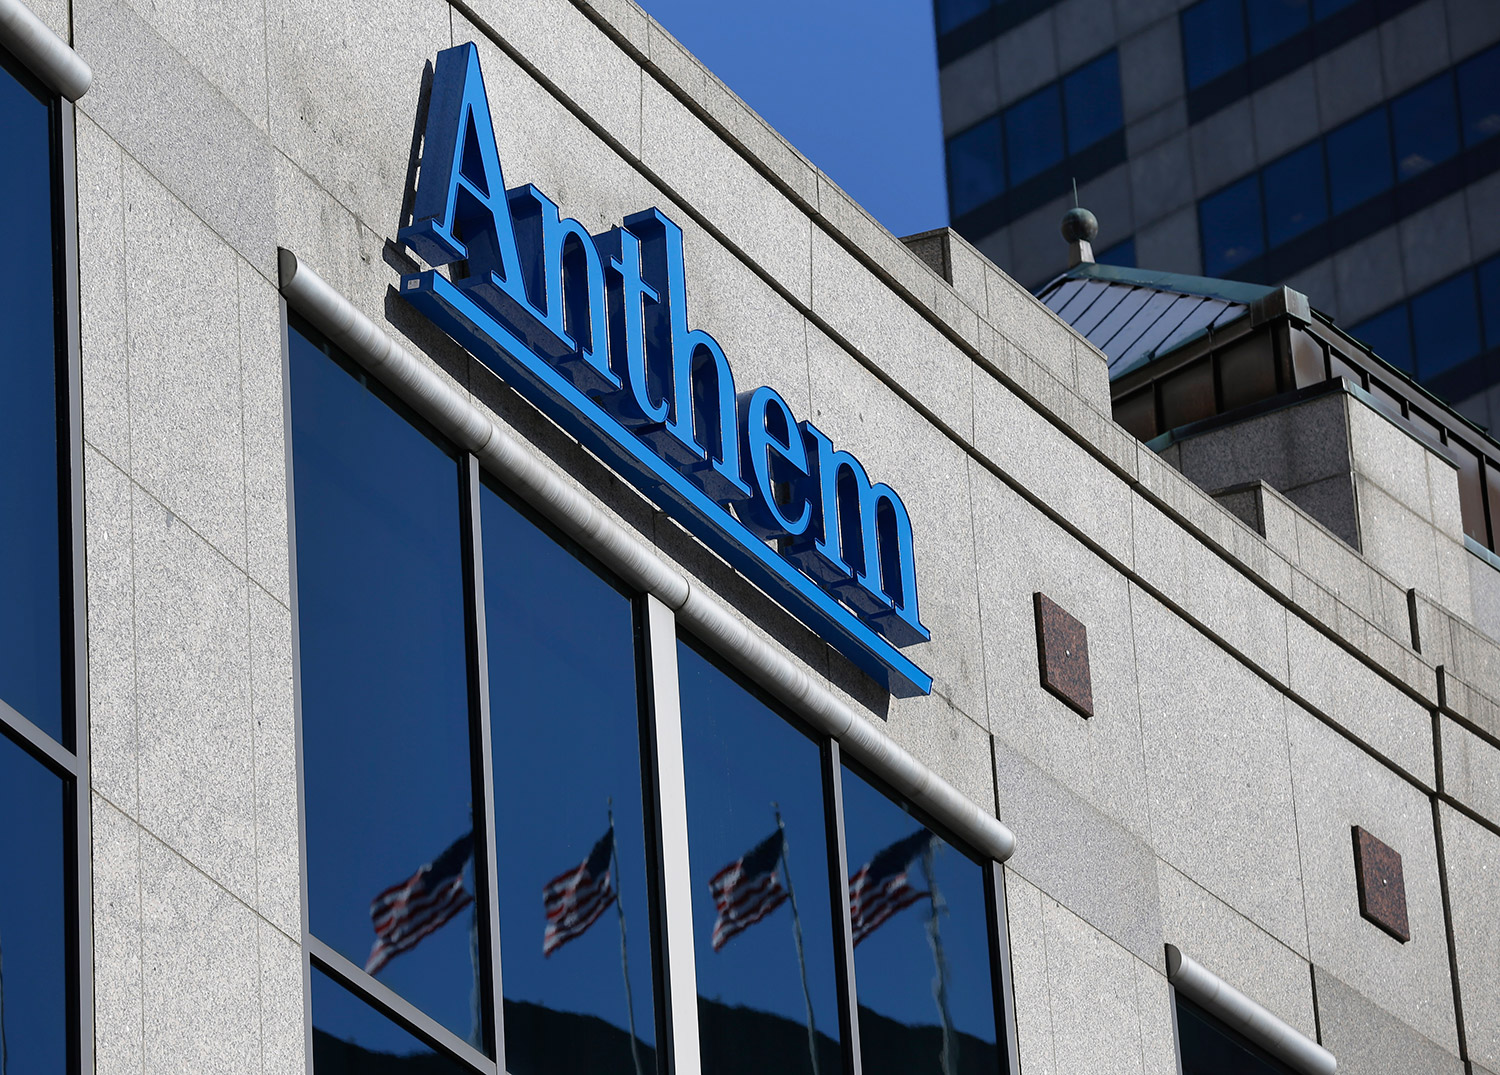 Hit by data breach, Anthem warns Mainers to watch for